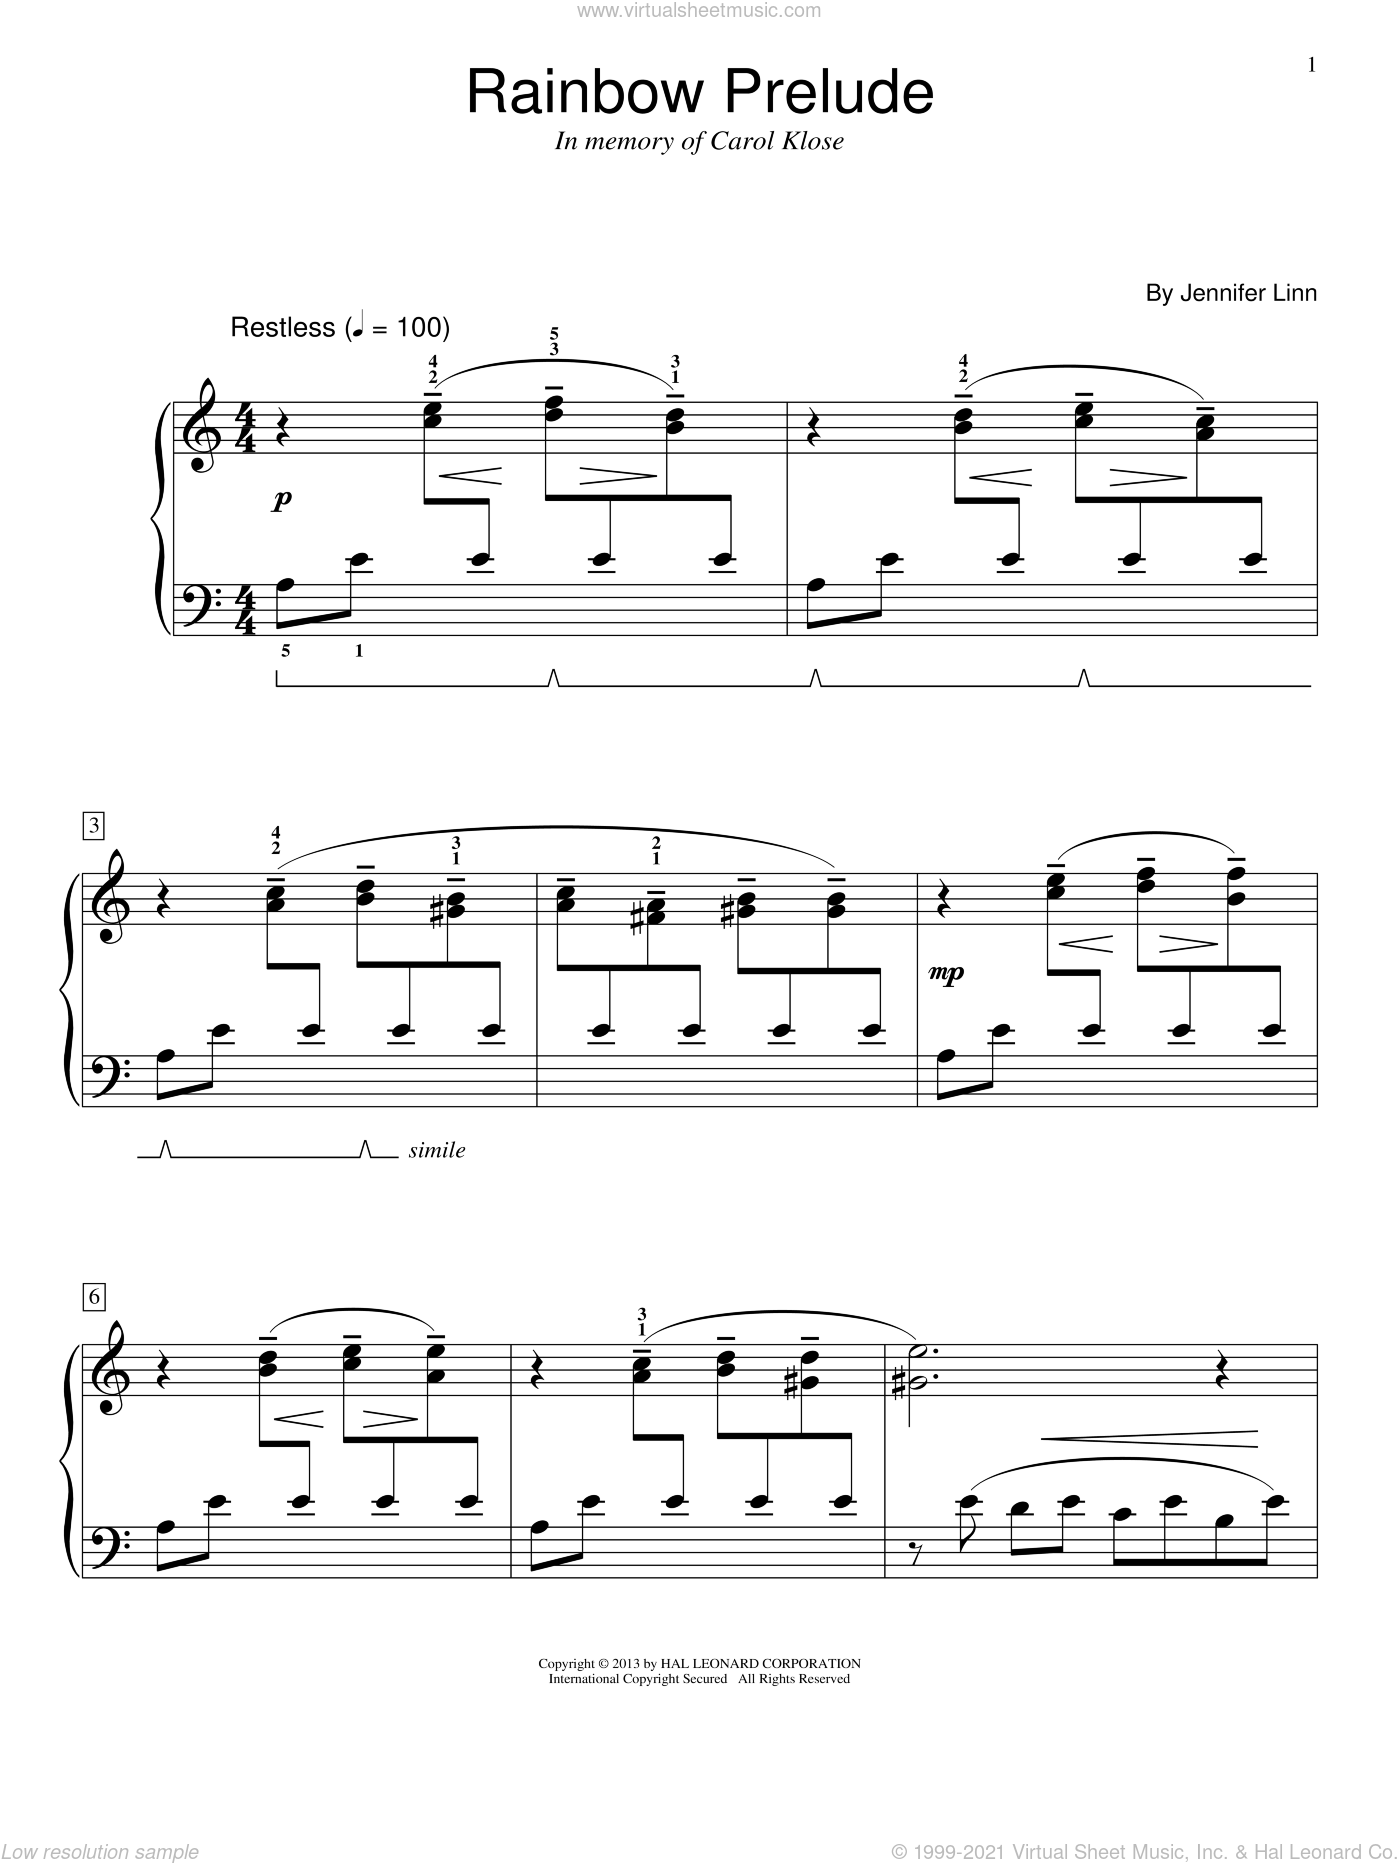 Rainbow Prelude sheet music for piano solo (elementary) by Jennifer Linn